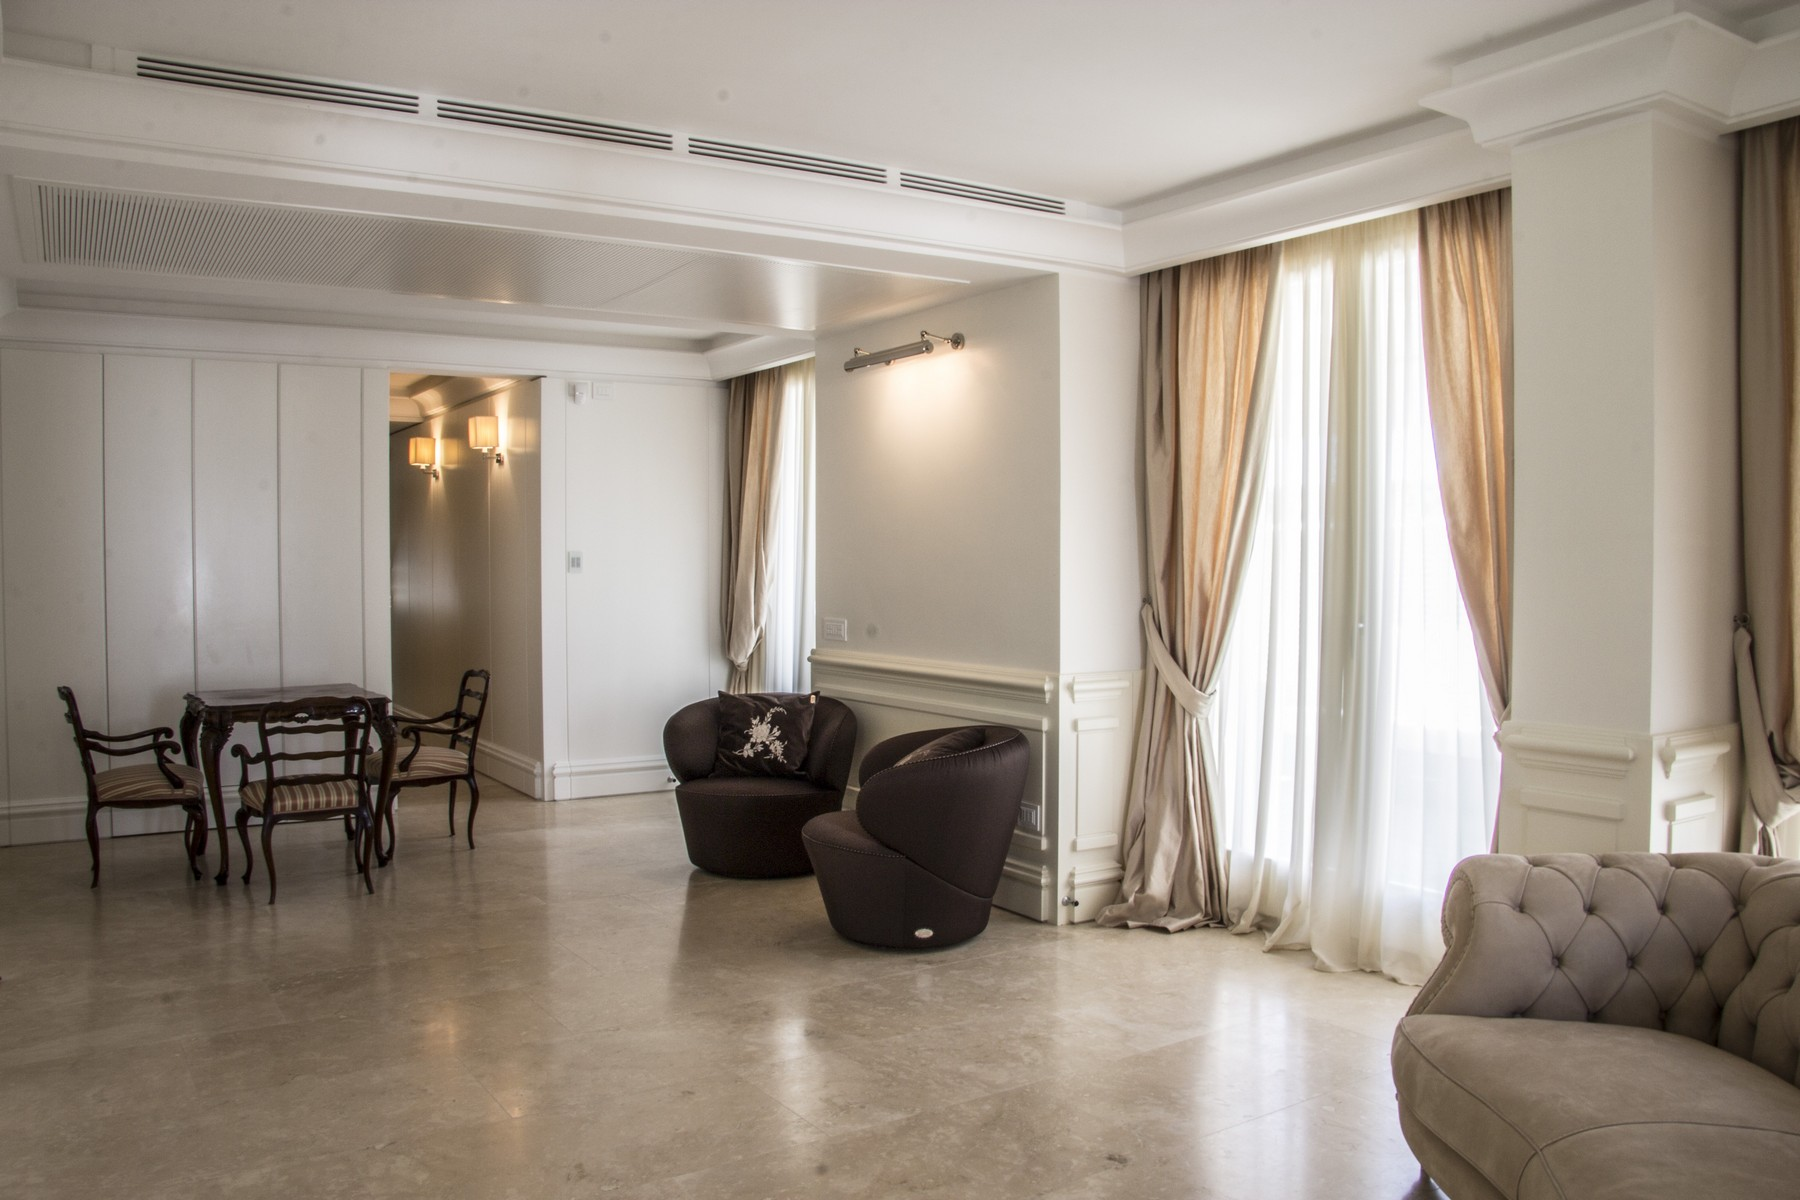 Additional photo for property listing at Stunning Penthouse in Rome Parioli  Rome, Roma 00197 Italia